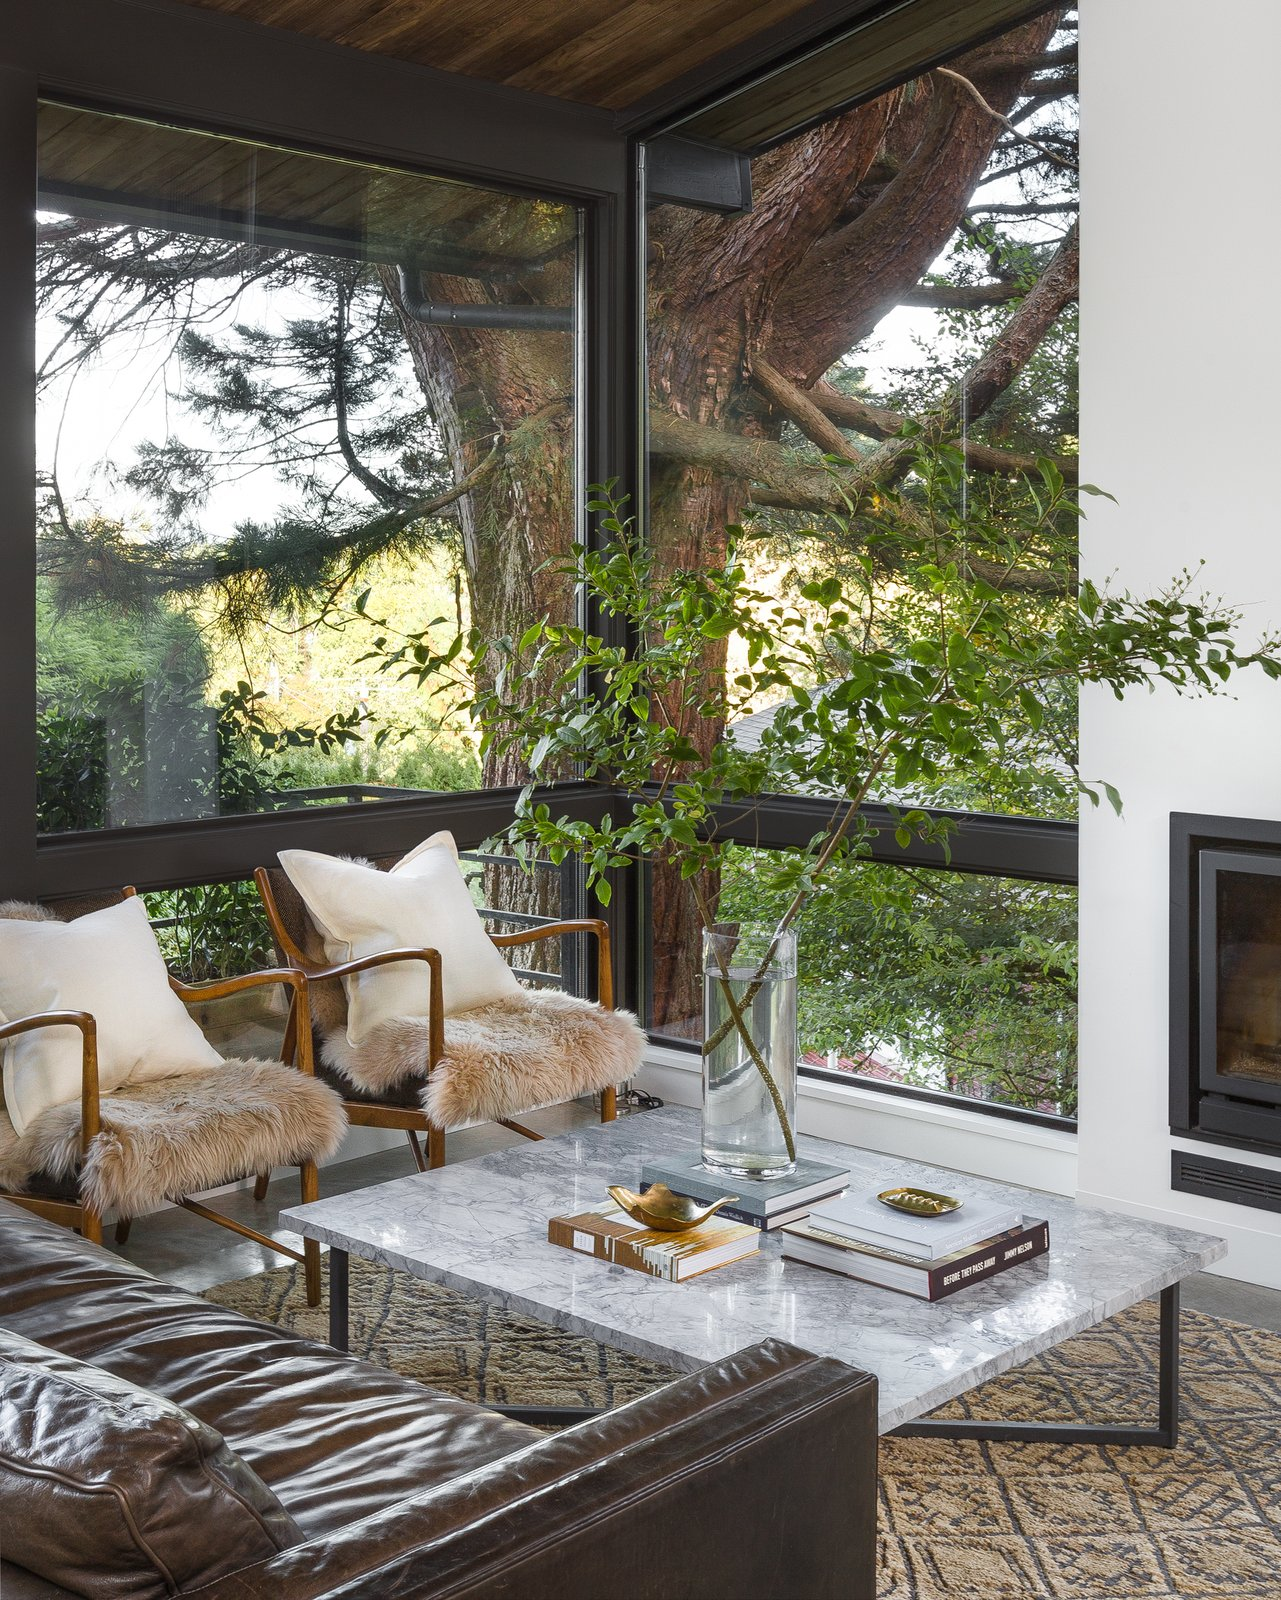 Setting Up A Living Room With A Corner Fireplace: Photo 7 Of 17 In A 1957 Midcentury In Seattle Receives A